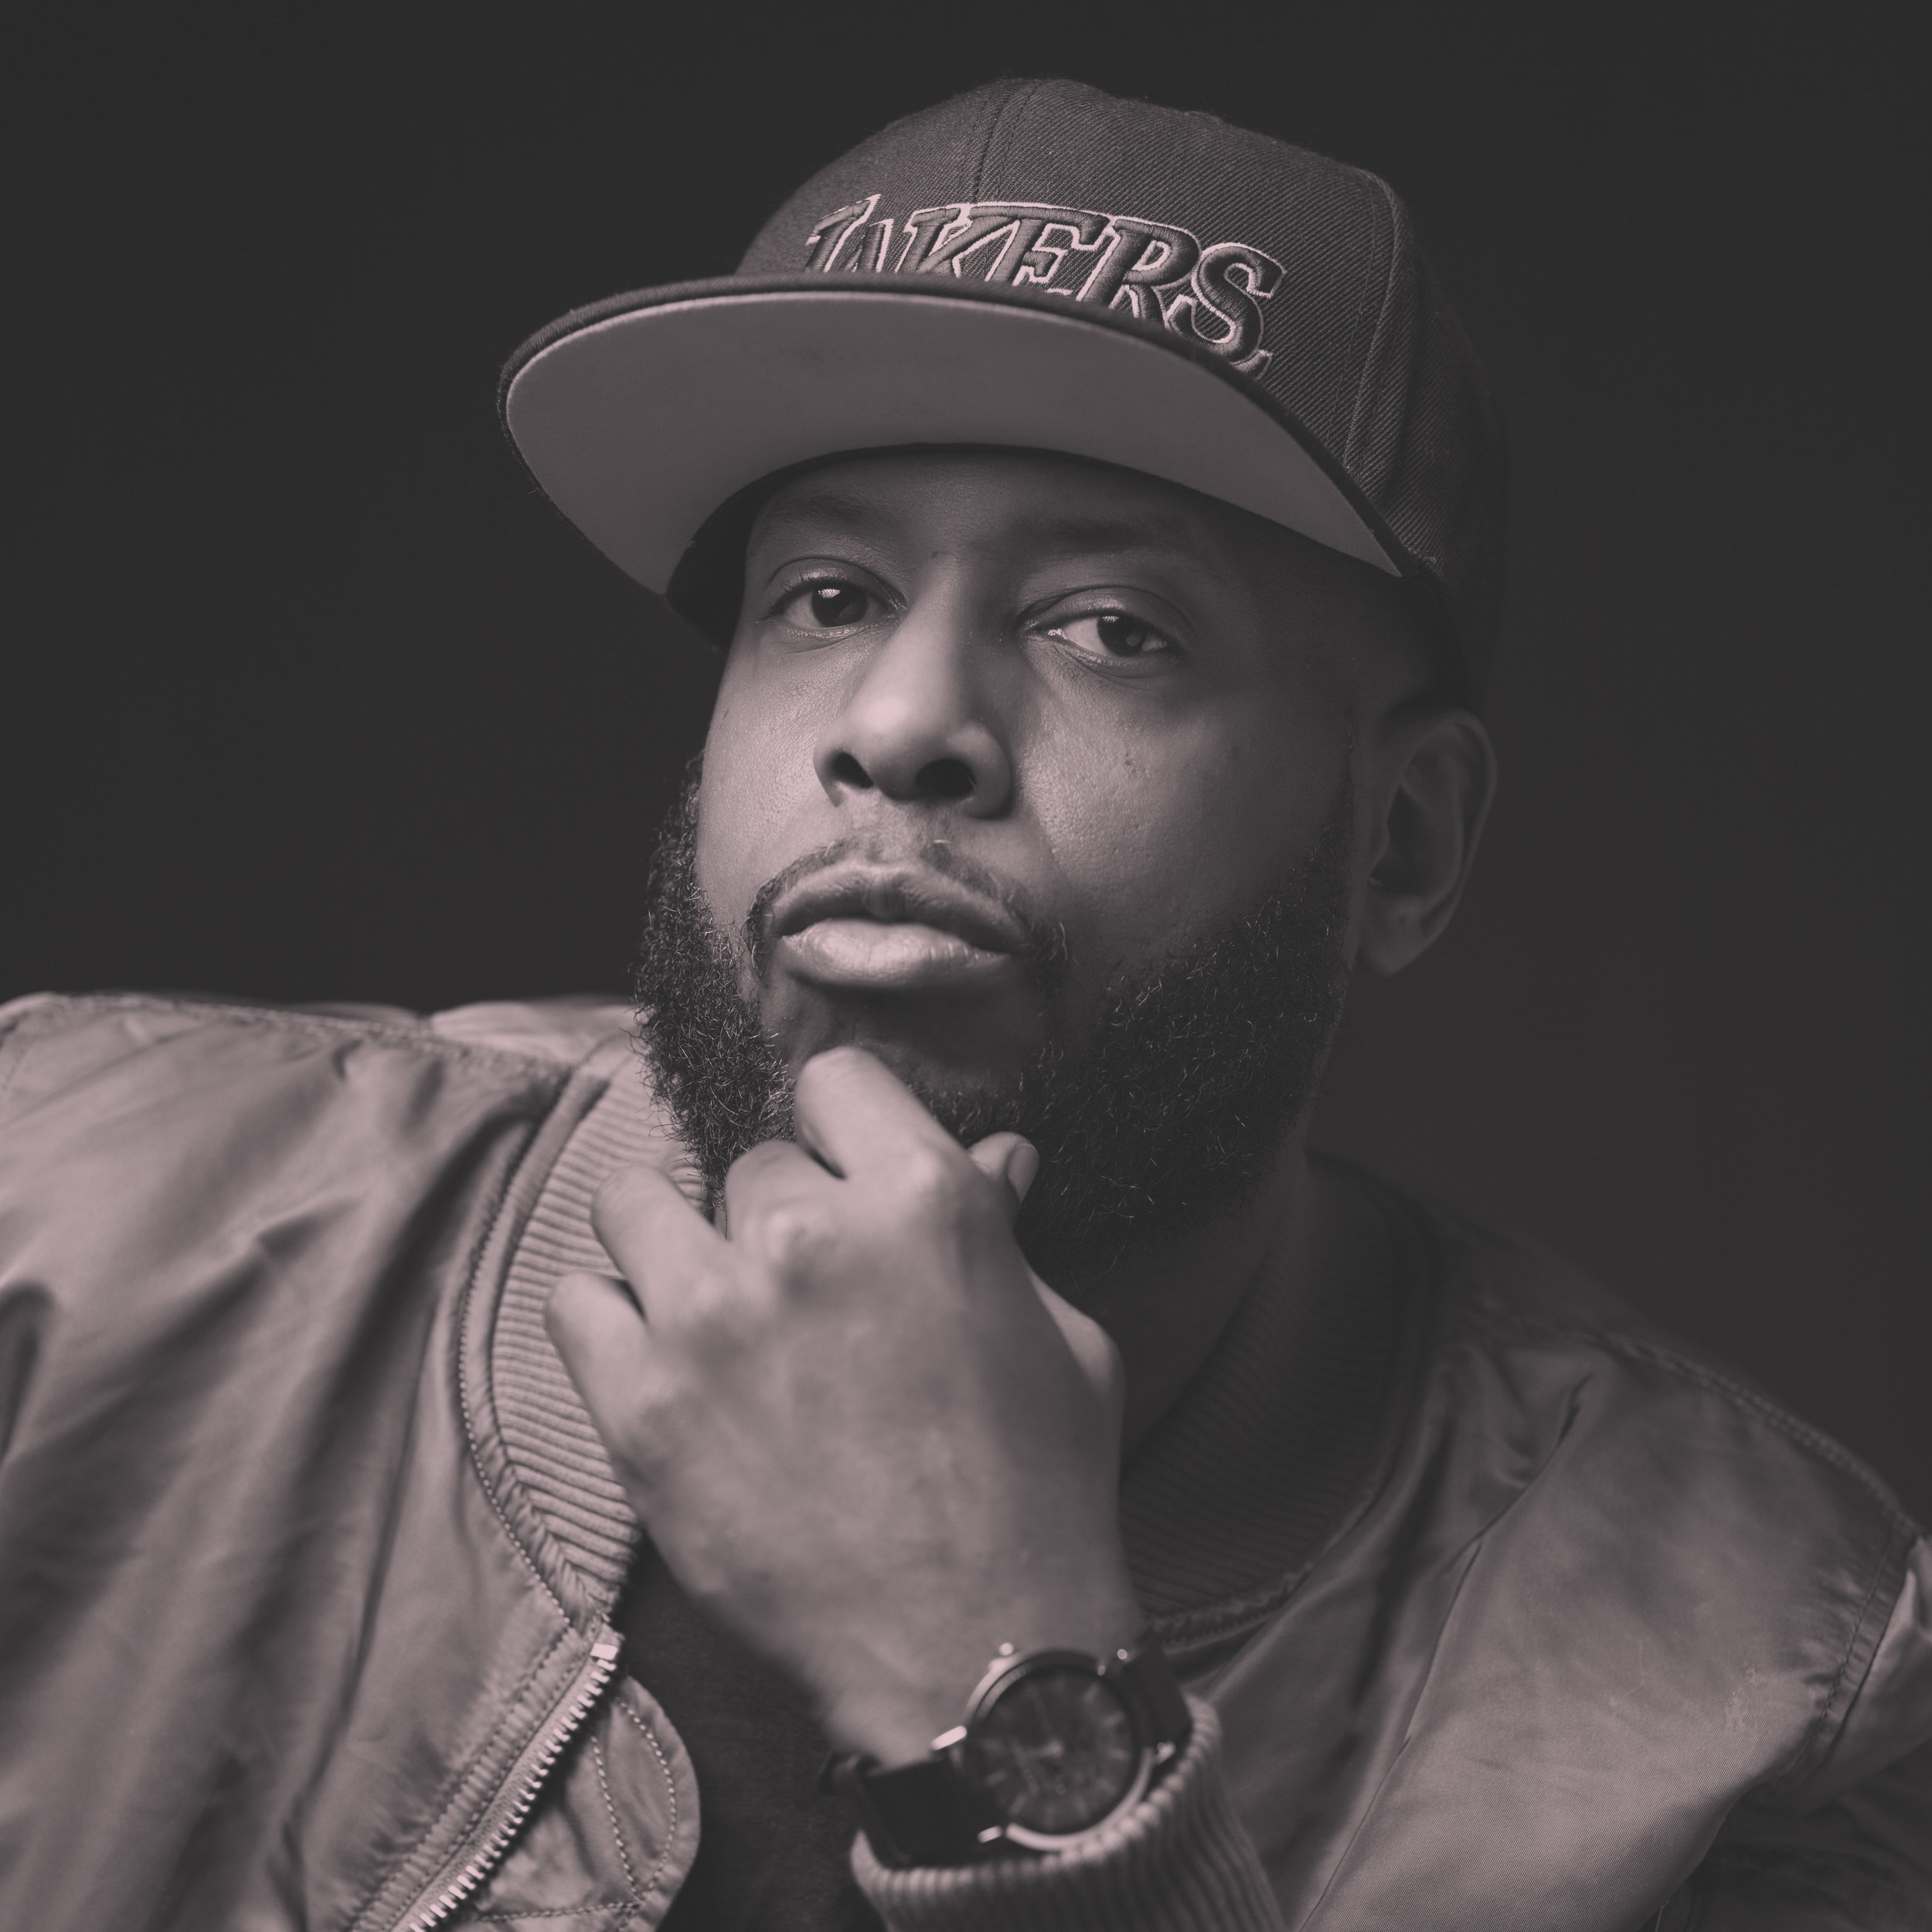 Talib Kweli - After nearly 20 years of releasing mesmerizing music, Talib Kweli stands as one of the world's most talented and most accomplished Hip Hop artists.Collective Minds organised his KL, Singapore and Hong Kong shows selling over 900 tickets and packing out each venue.